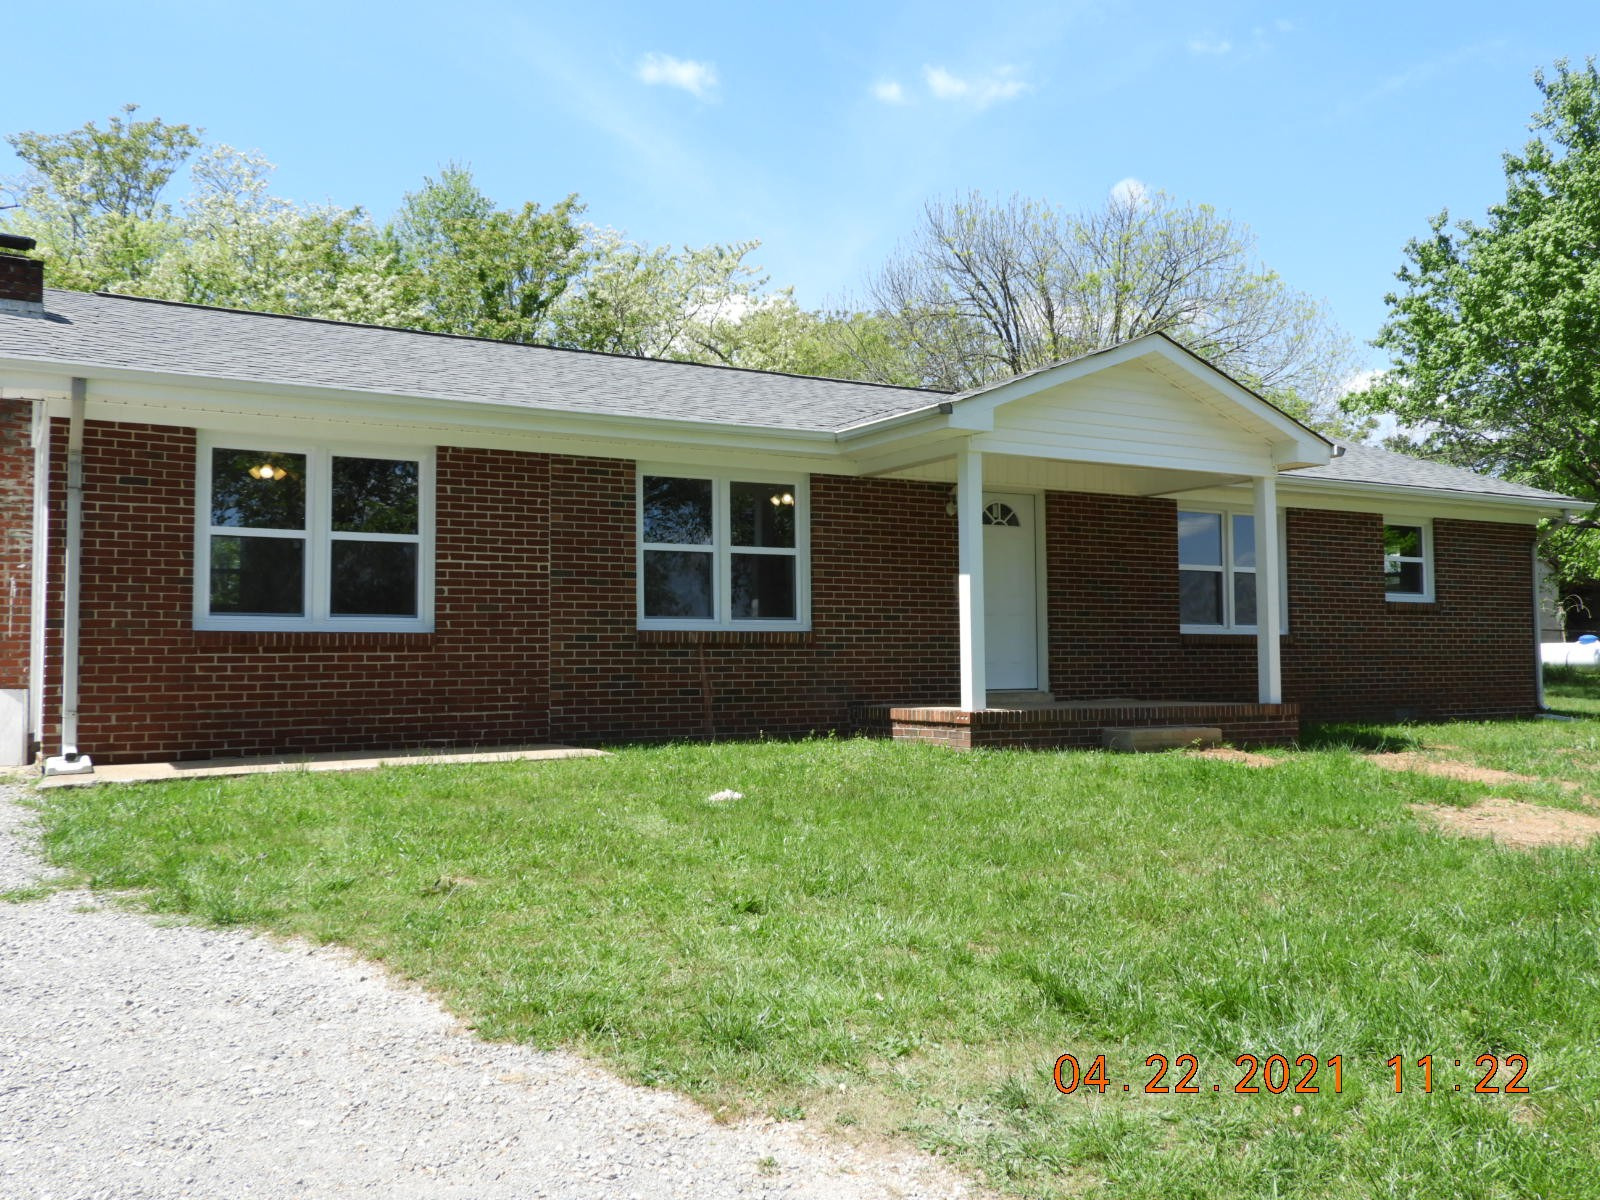 530 Rose Hill Rd, Pulaski, Tennessee 38478, 3 Bedrooms Bedrooms, ,2 BathroomsBathrooms,Single Family,For Sale,530 Rose Hill Rd,1,2247264